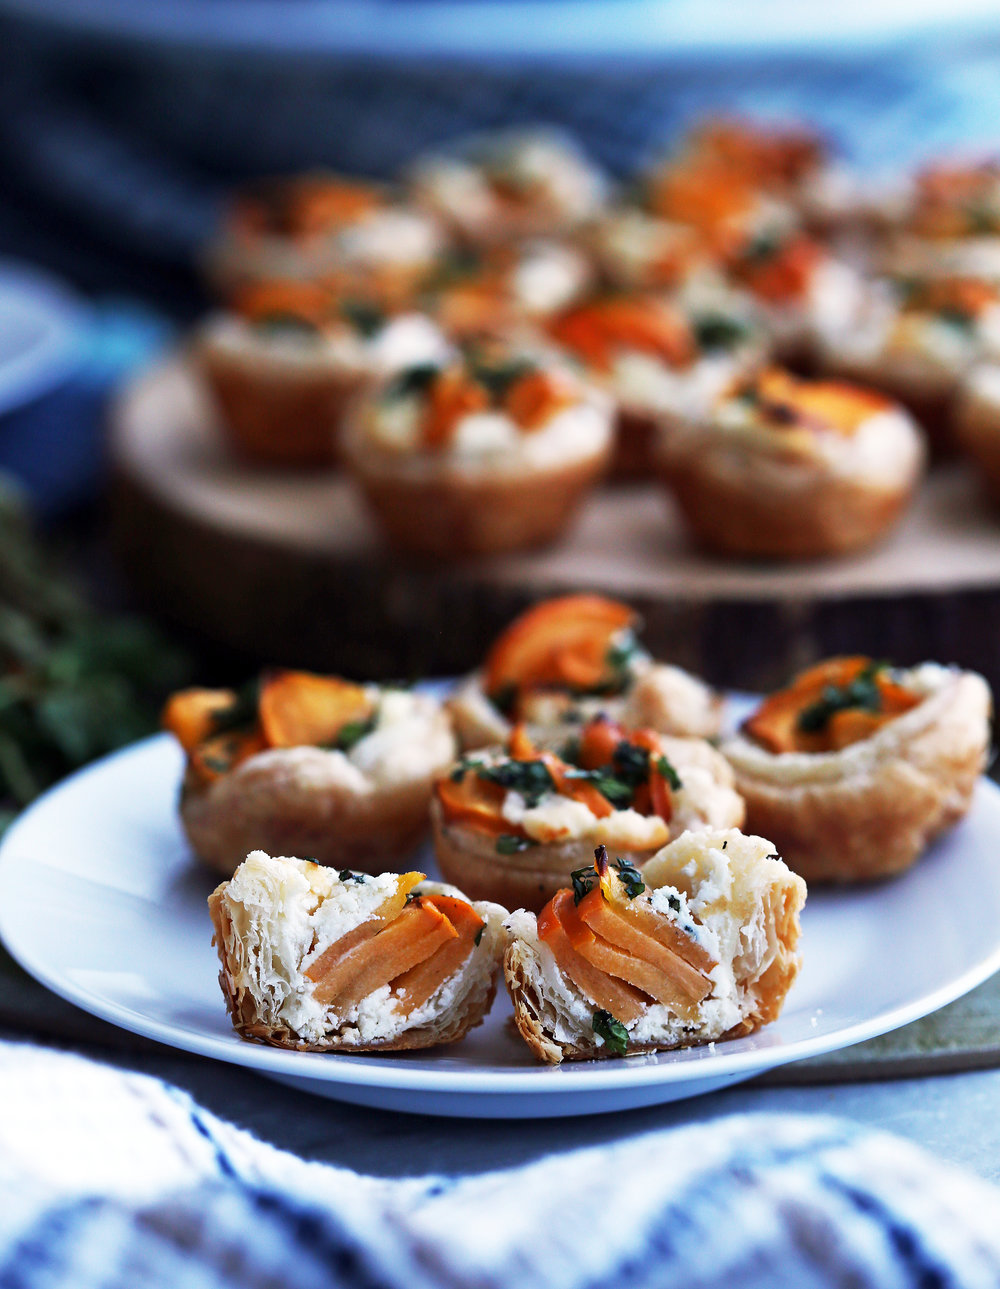 Five Persimmon Goat Cheese Tartlets on a white plate with one tartlet cut in half.